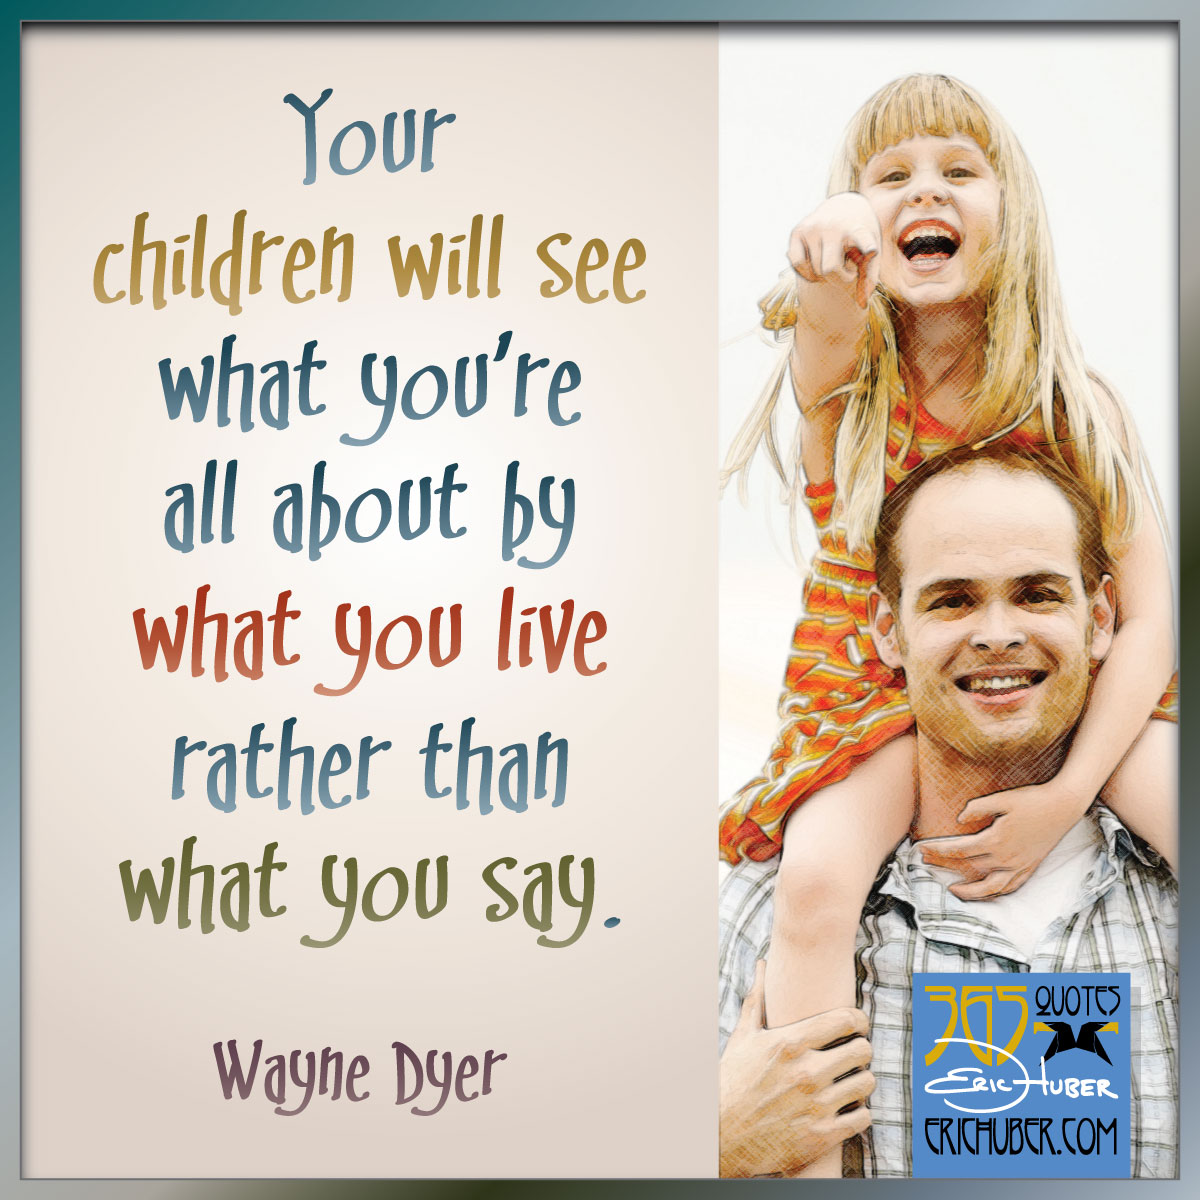 Wayne Dyer's quote #6